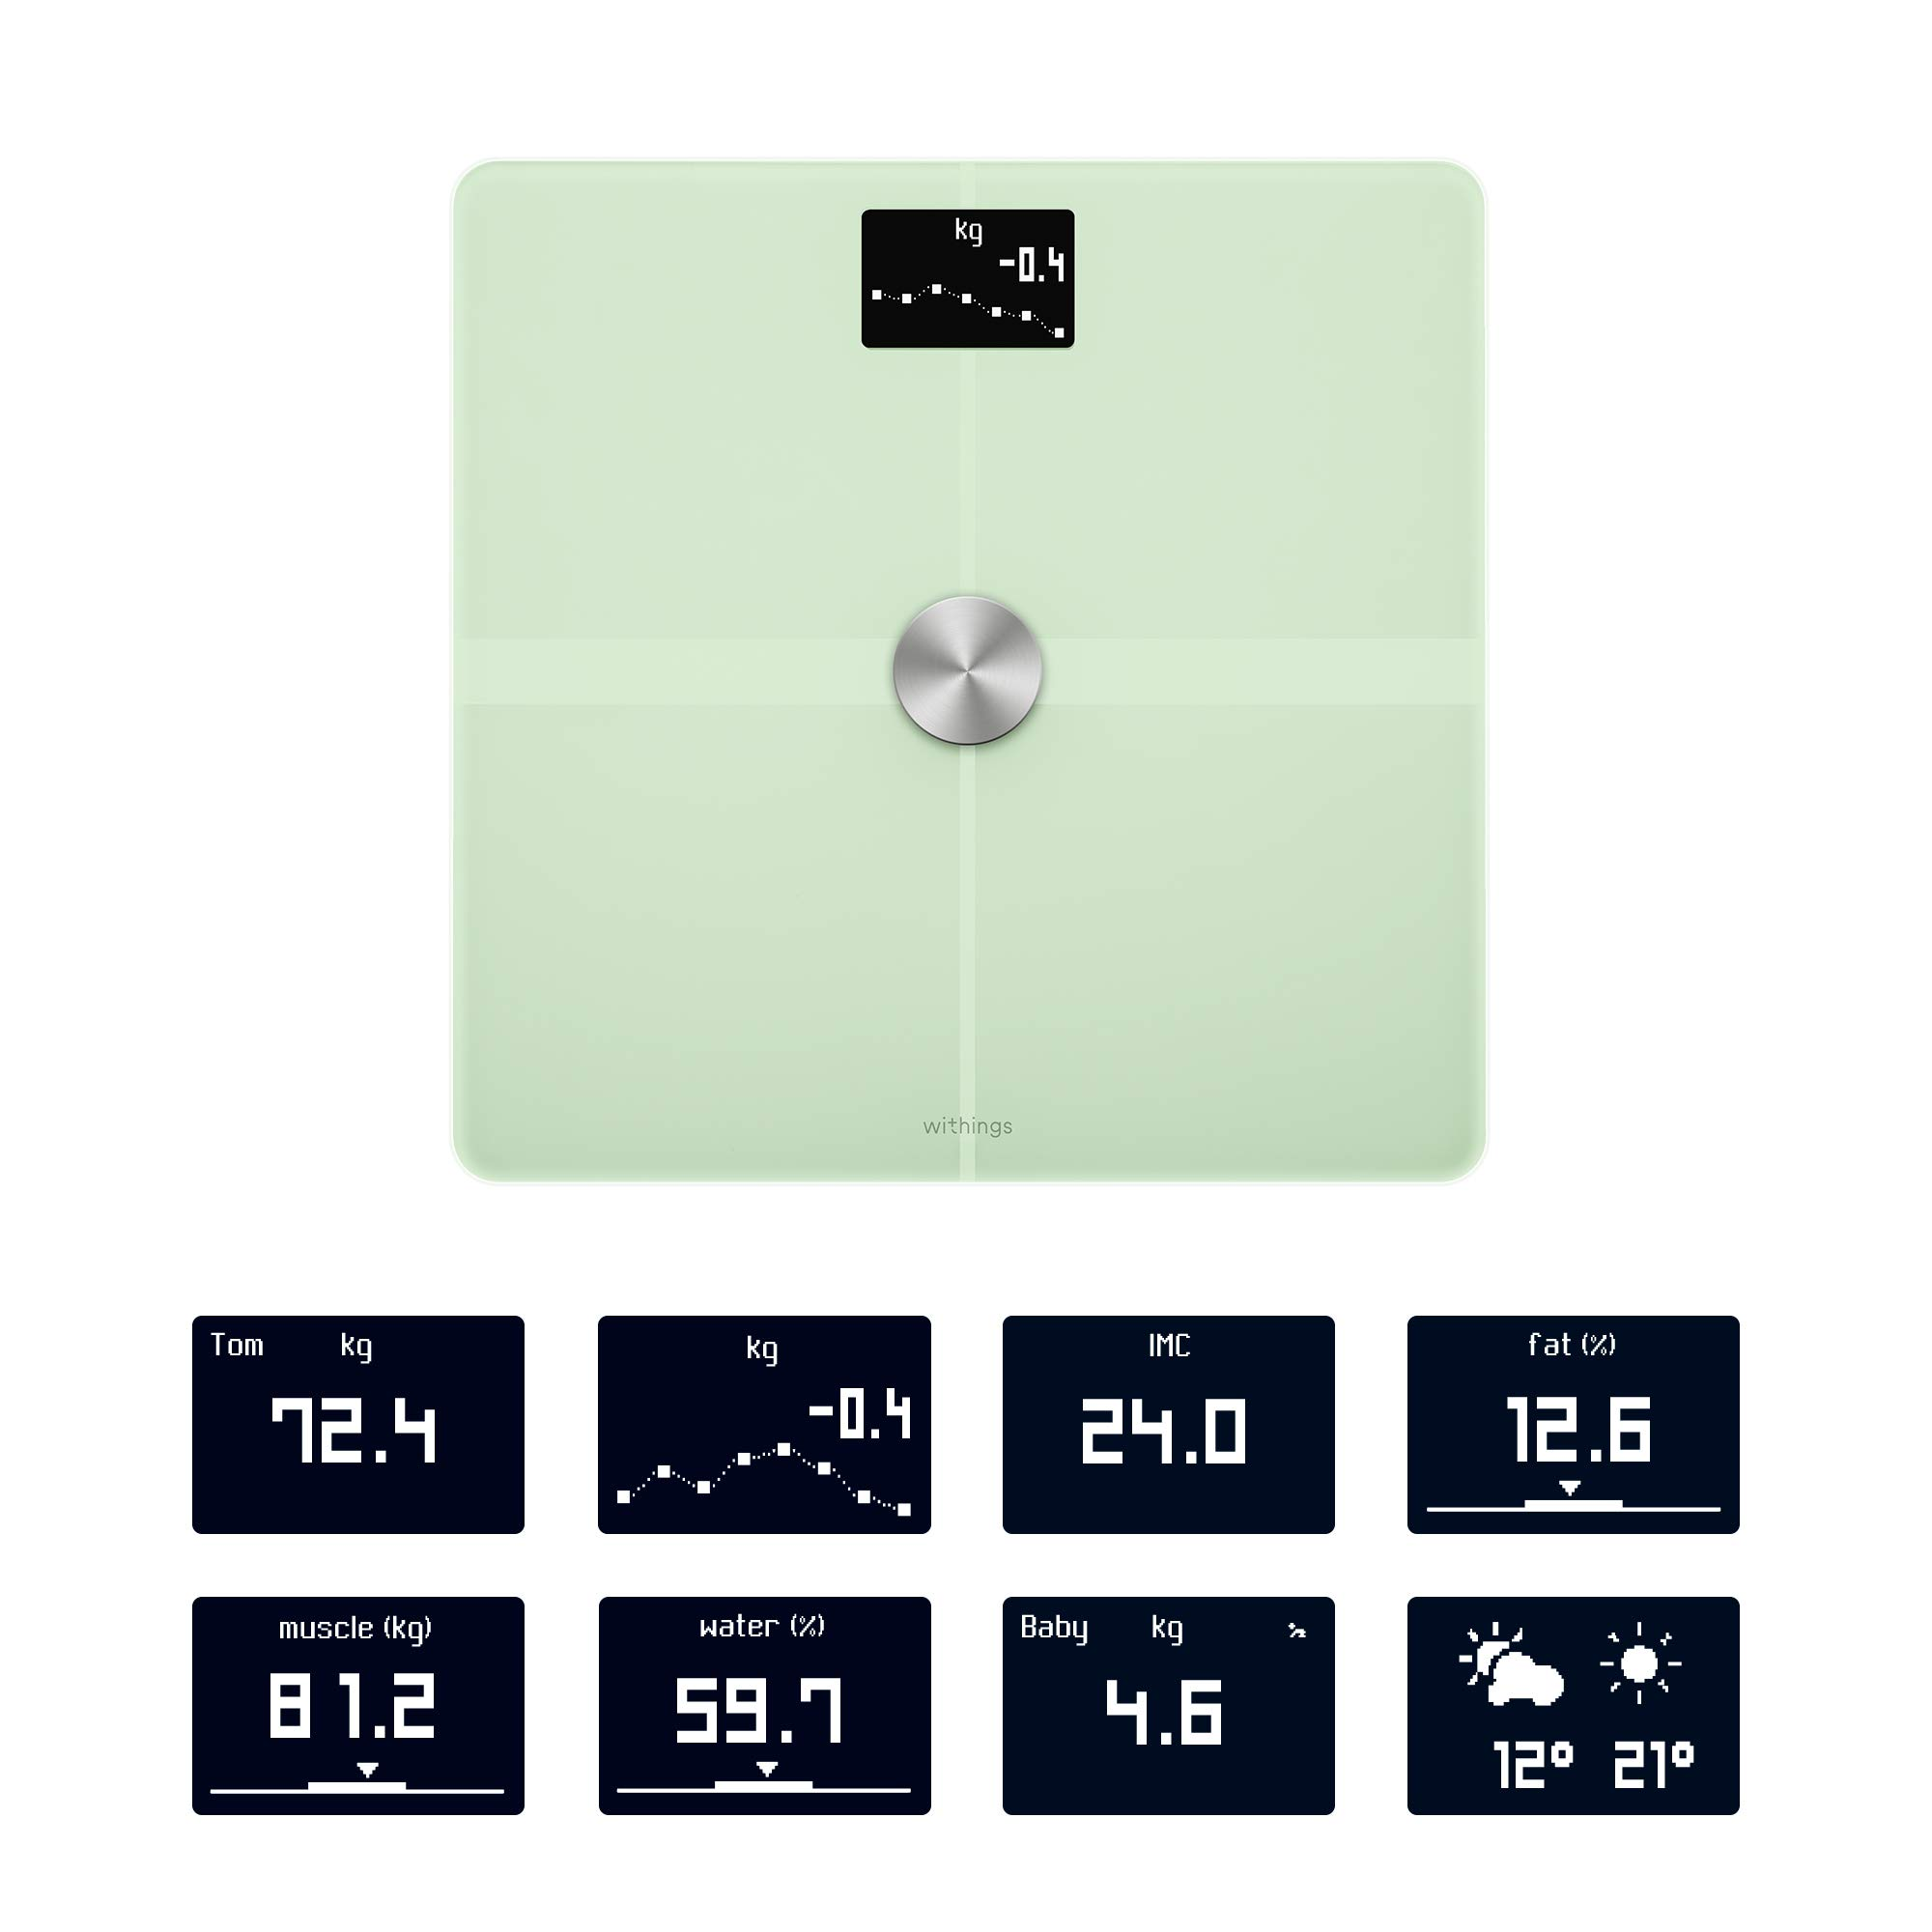 Withings | Body+ - Smart Body Composition Wi-Fi Digital Scale with smartphone app, Green by Withings (Image #2)